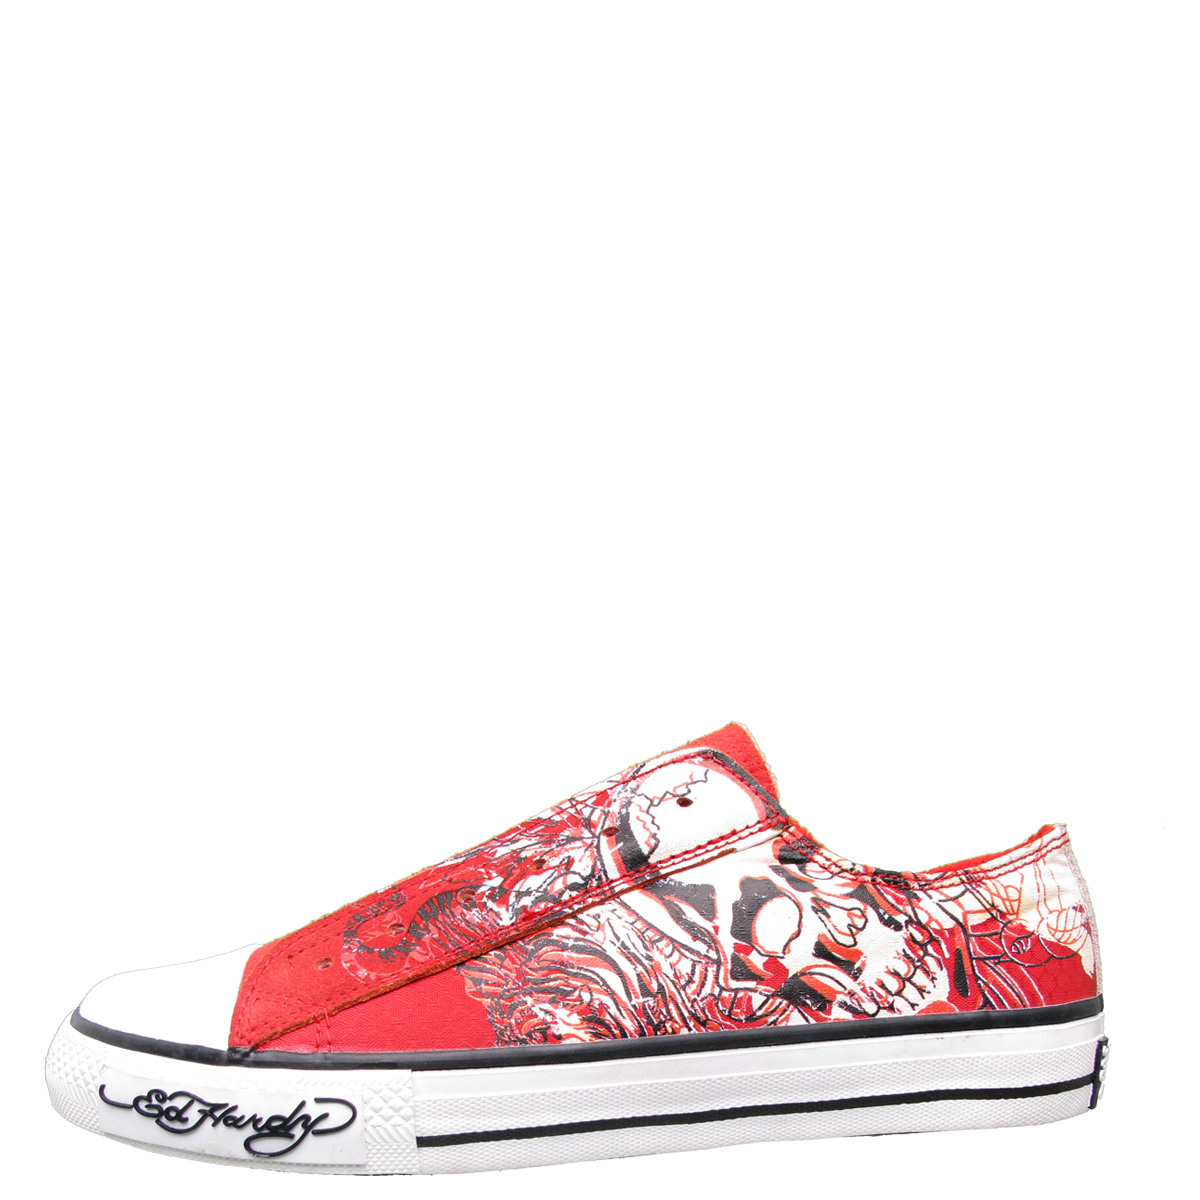 Ed Hardy Lowrise Chicago Shoe for Women - Red